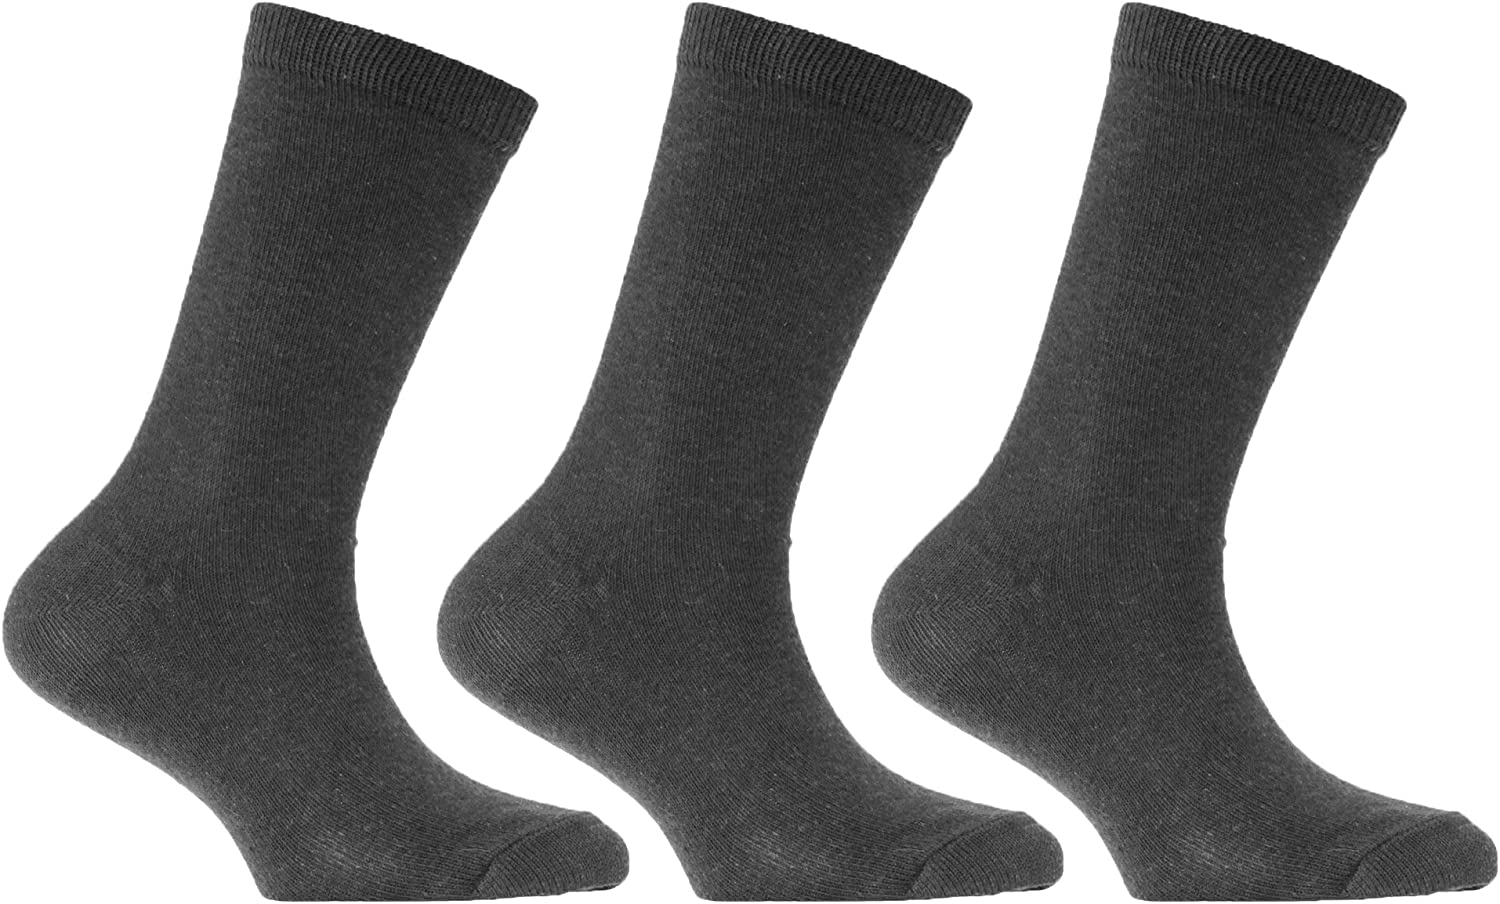 Back to School Kids 6 Pairs Knee High Plain School Cotton Rich Socks